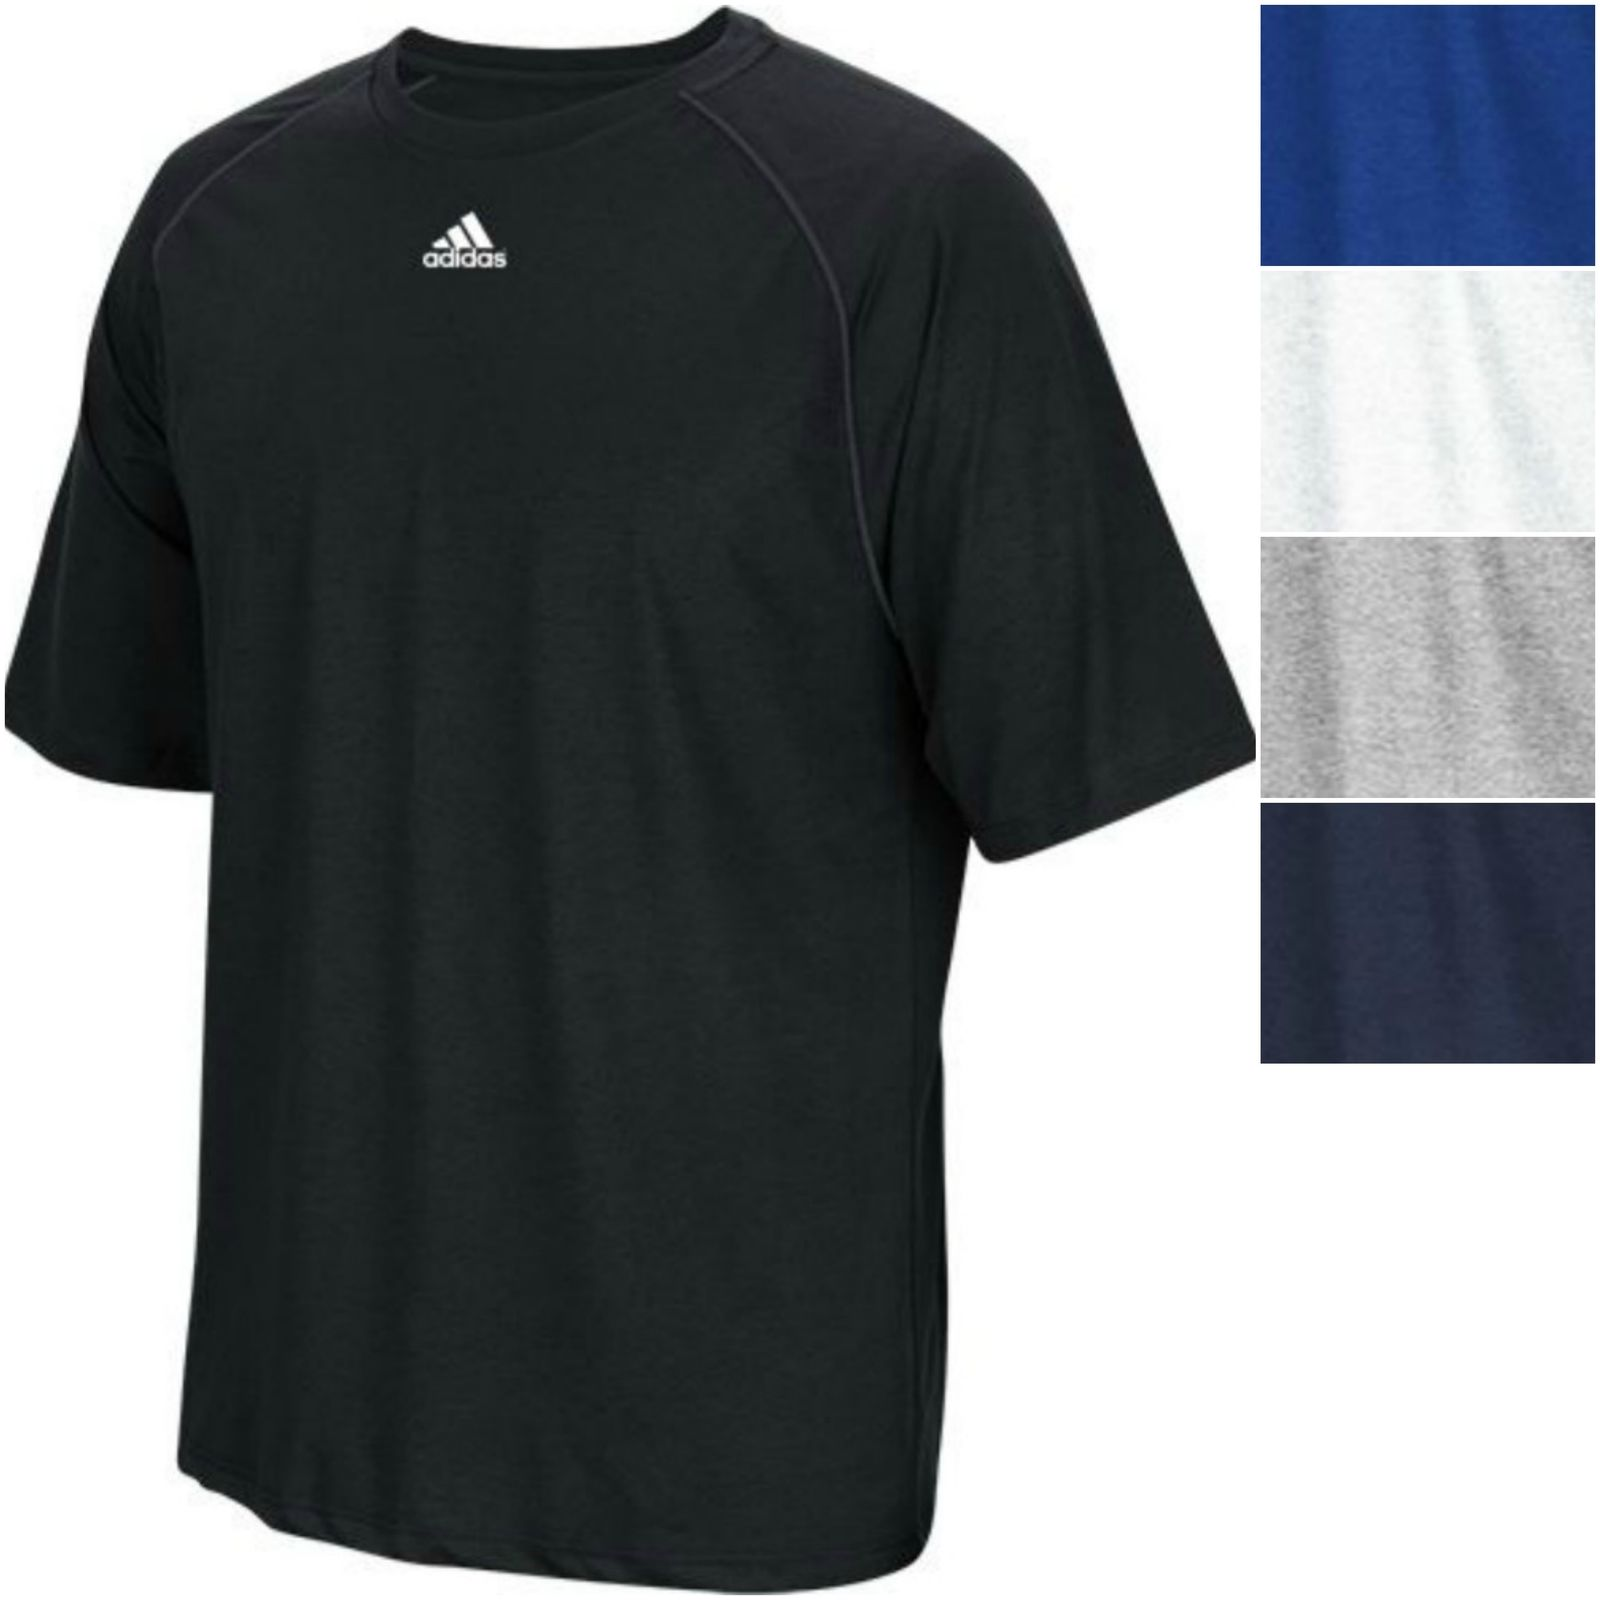 Adidas men 39 s climalite short sleeve tee athletic relaxed for Athletic fit t shirts for men